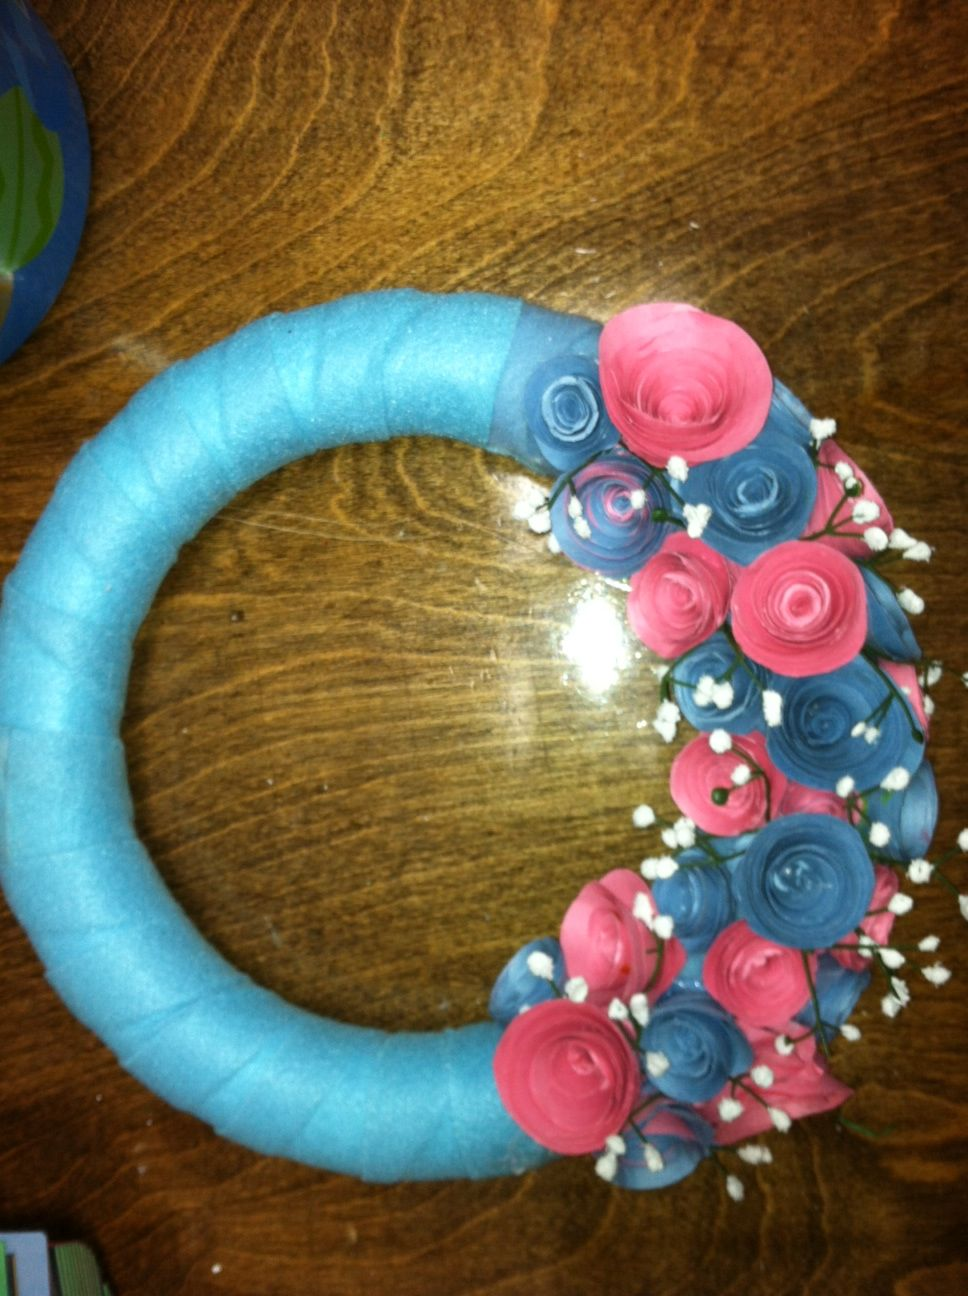 Part Of The Wreath I Started Making Made The Flowers Out Of Colored